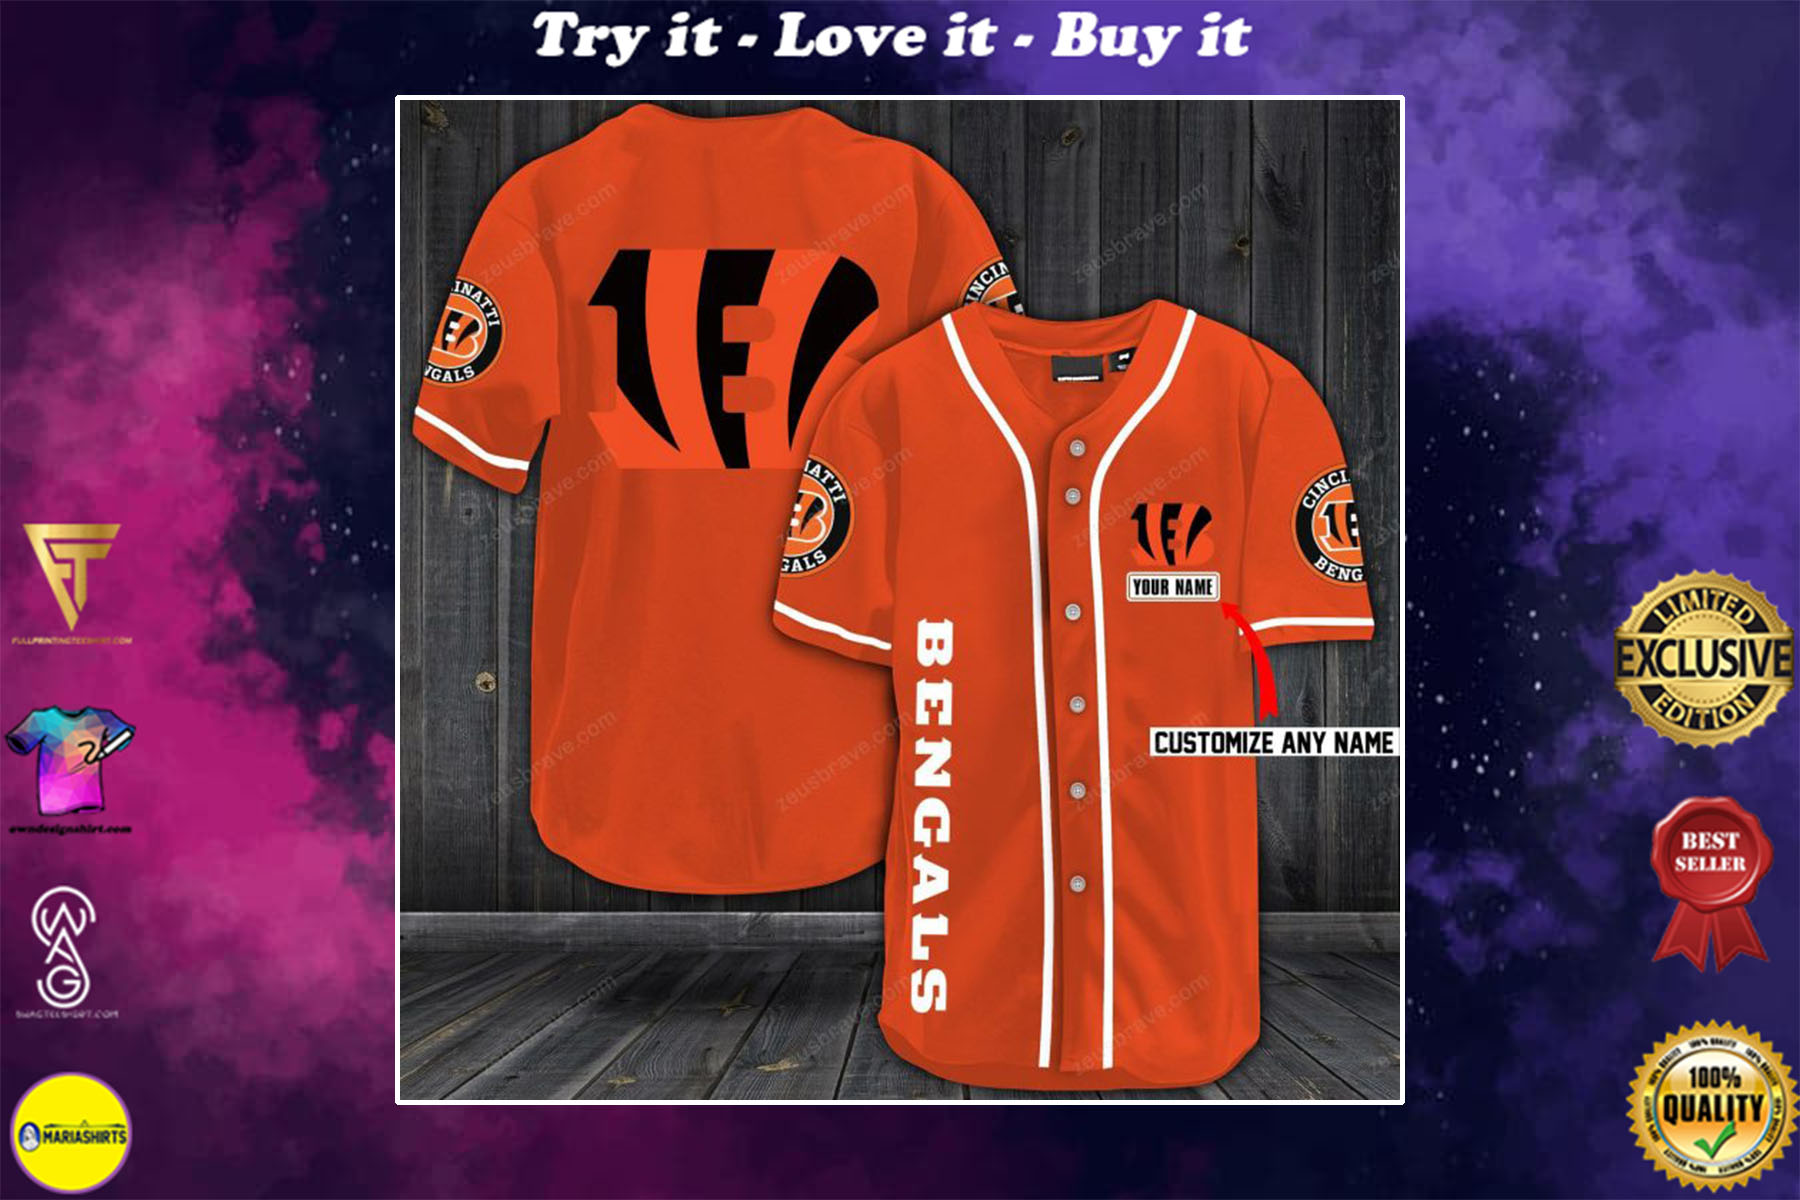 [special edition] personalized name jersey cincinnati bengals shirt - maria